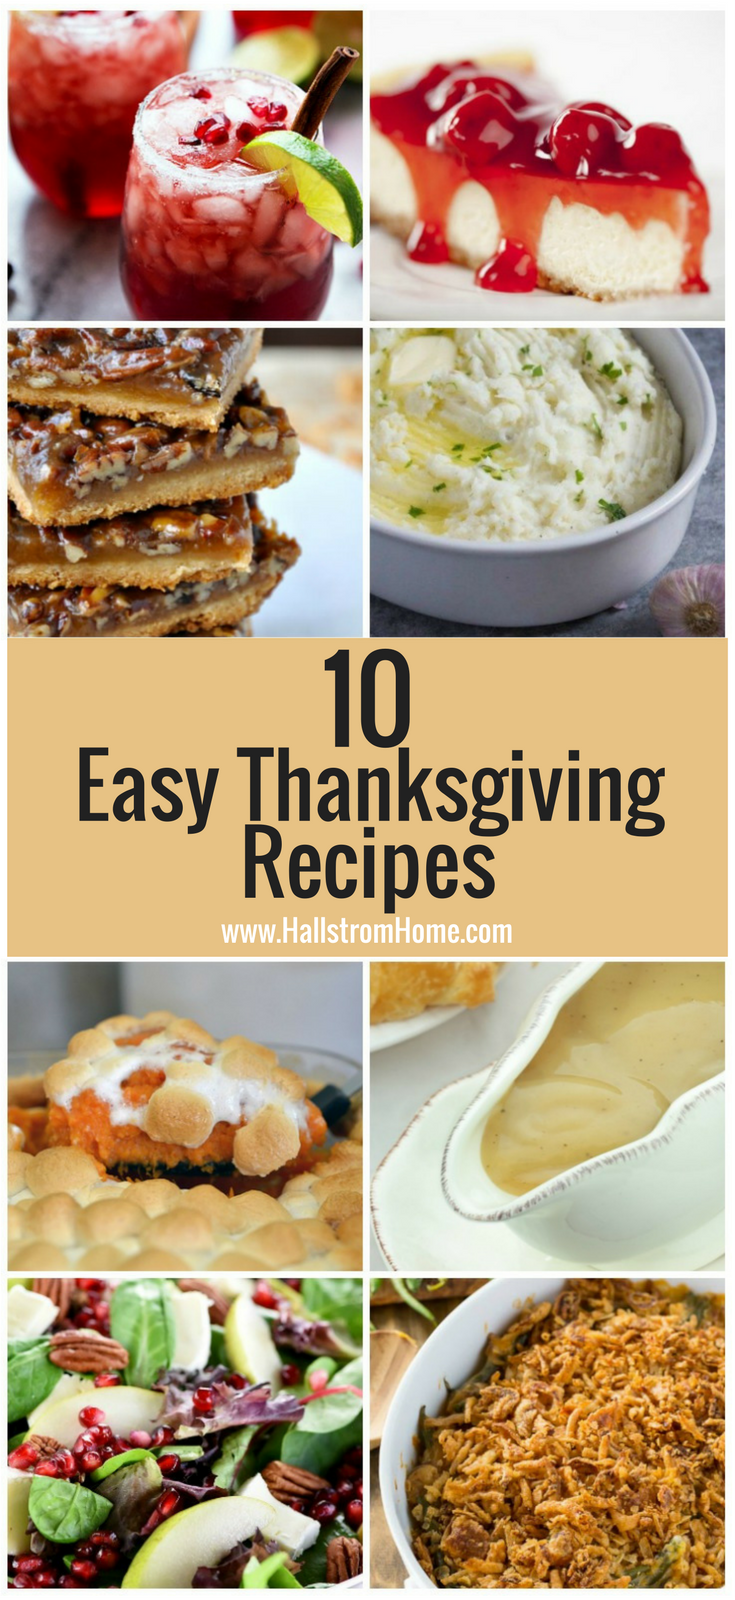 10 Quick and Easy Thanksgiving Recipes